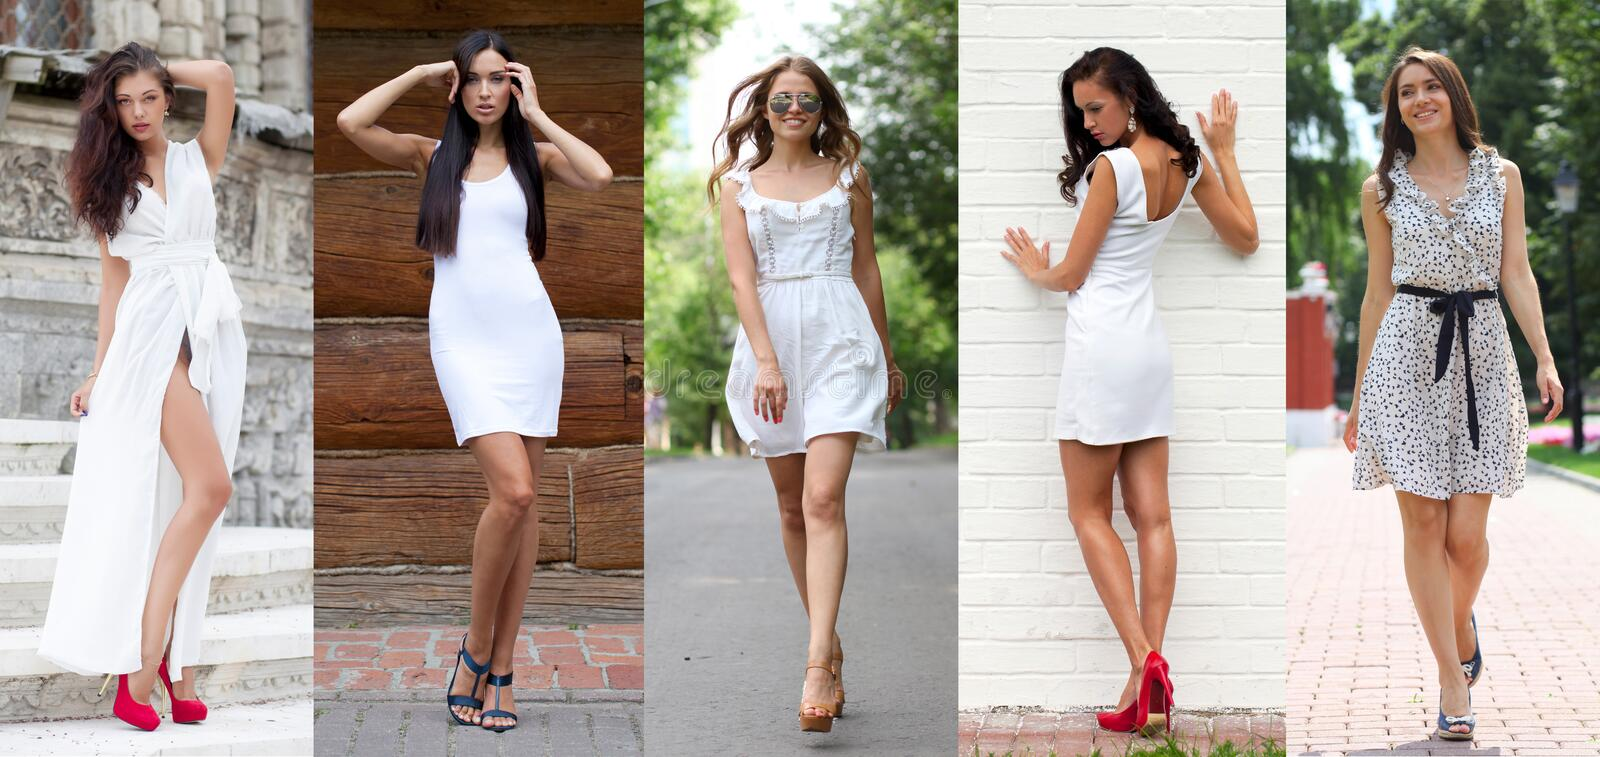 Street Fashion, Beautiful young women. Collage five models in white dress. Street Fashion, Beautiful young women stock images